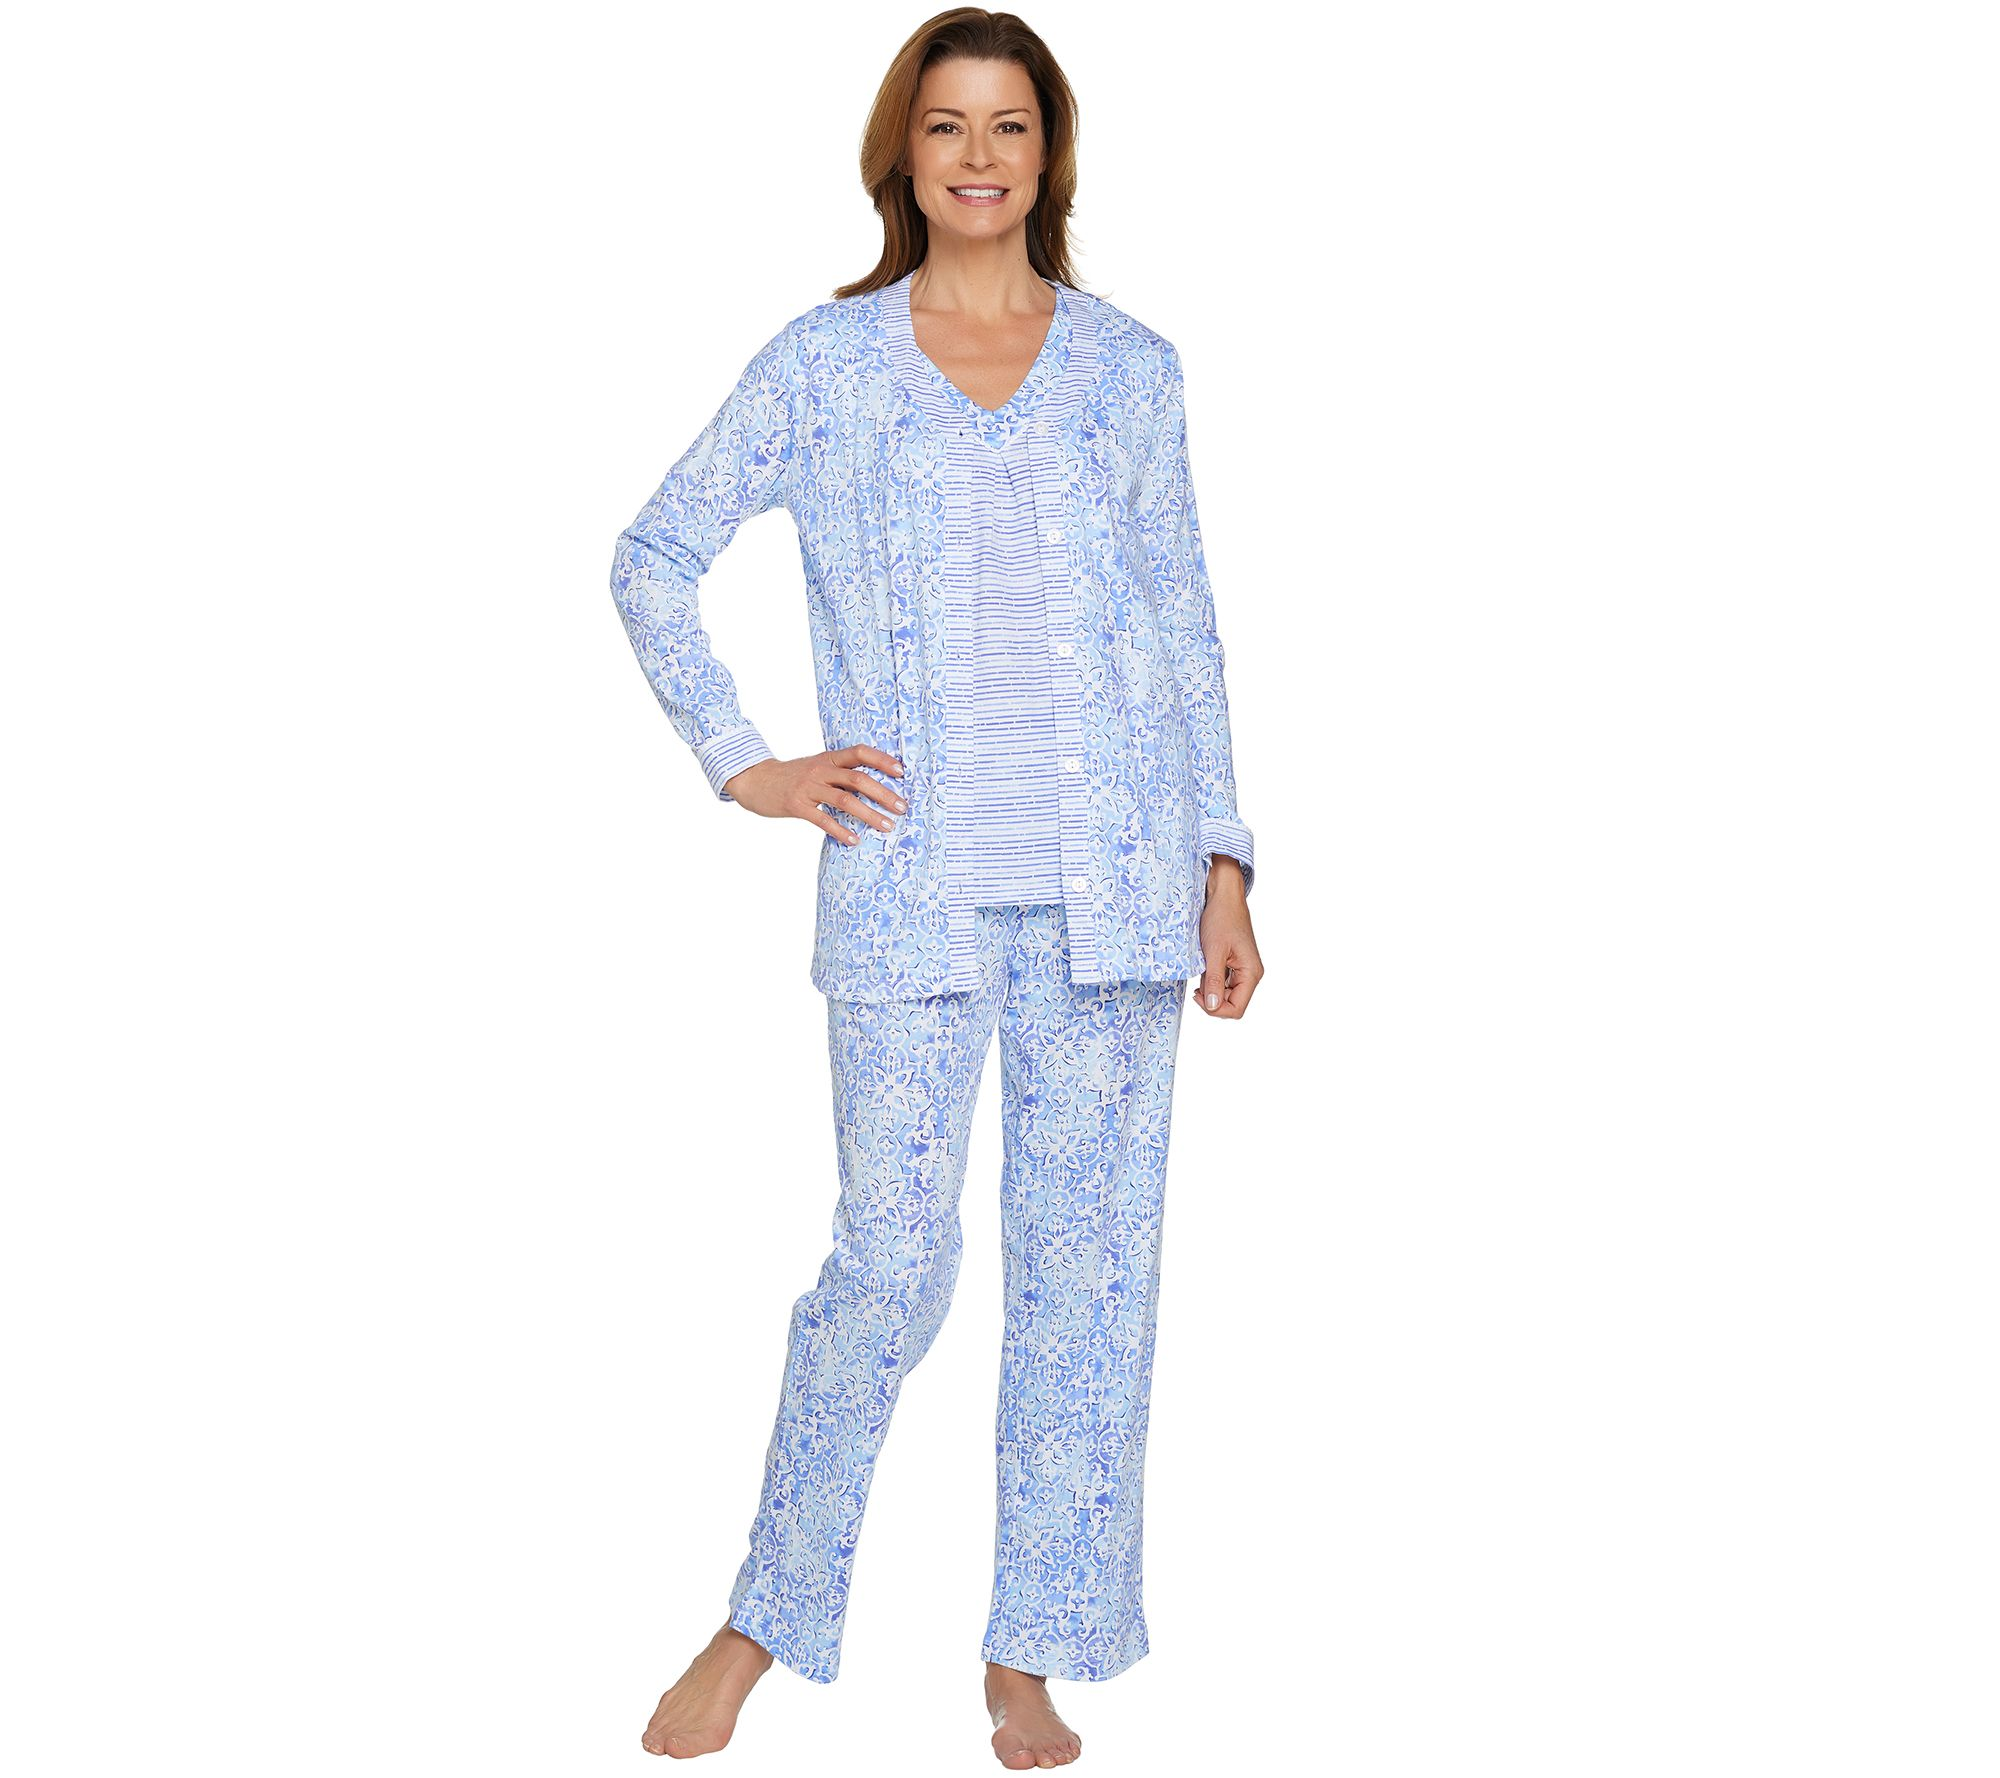 Stan Herman Petite Size Pajama Sets P3X Zen Diamond French Terry Black. Sold by Phoenix Trading Company. $ $ Stan Herman Petite Size PXL Pajama Sets Micro Fleece Novelty Set Black. Sold by Phoenix Trading Company. $ Lands' End Women's Petite Long Sleeve Flannel Pajama .